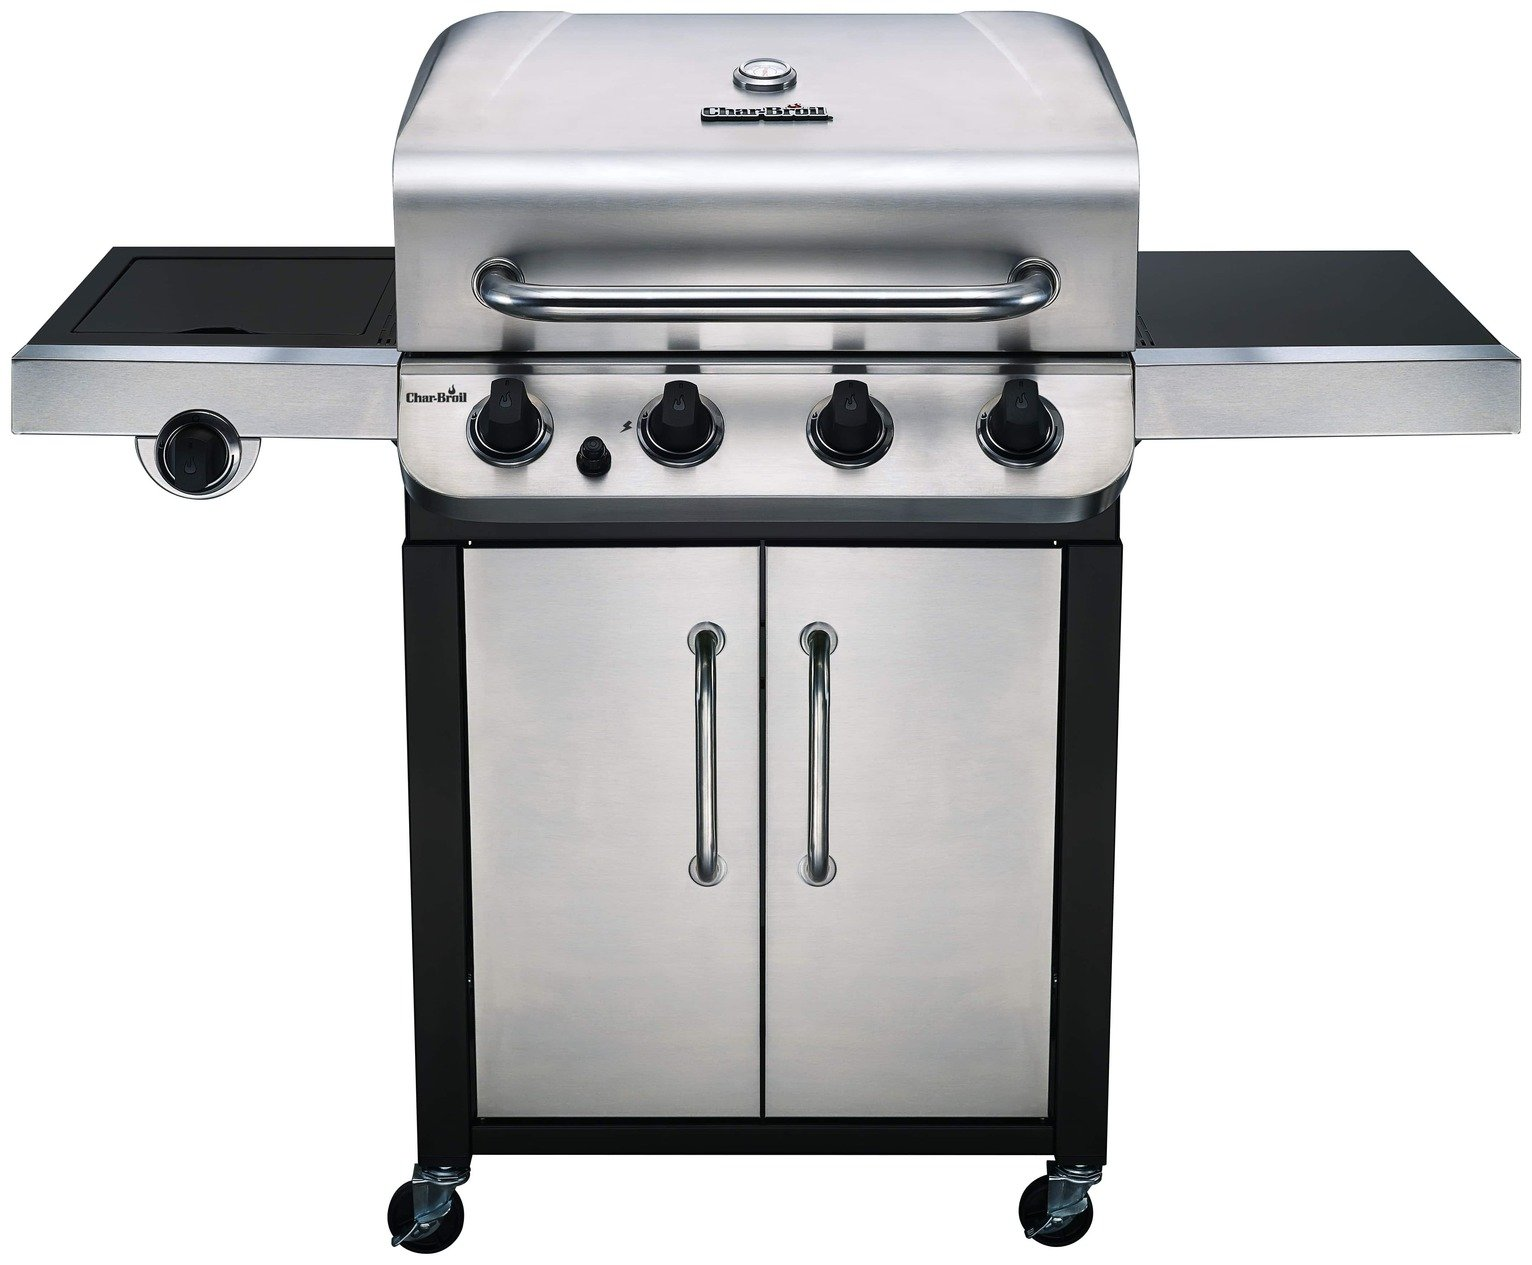 Image of Char-Broil 440S 4 Burner Steel Gas BBQ